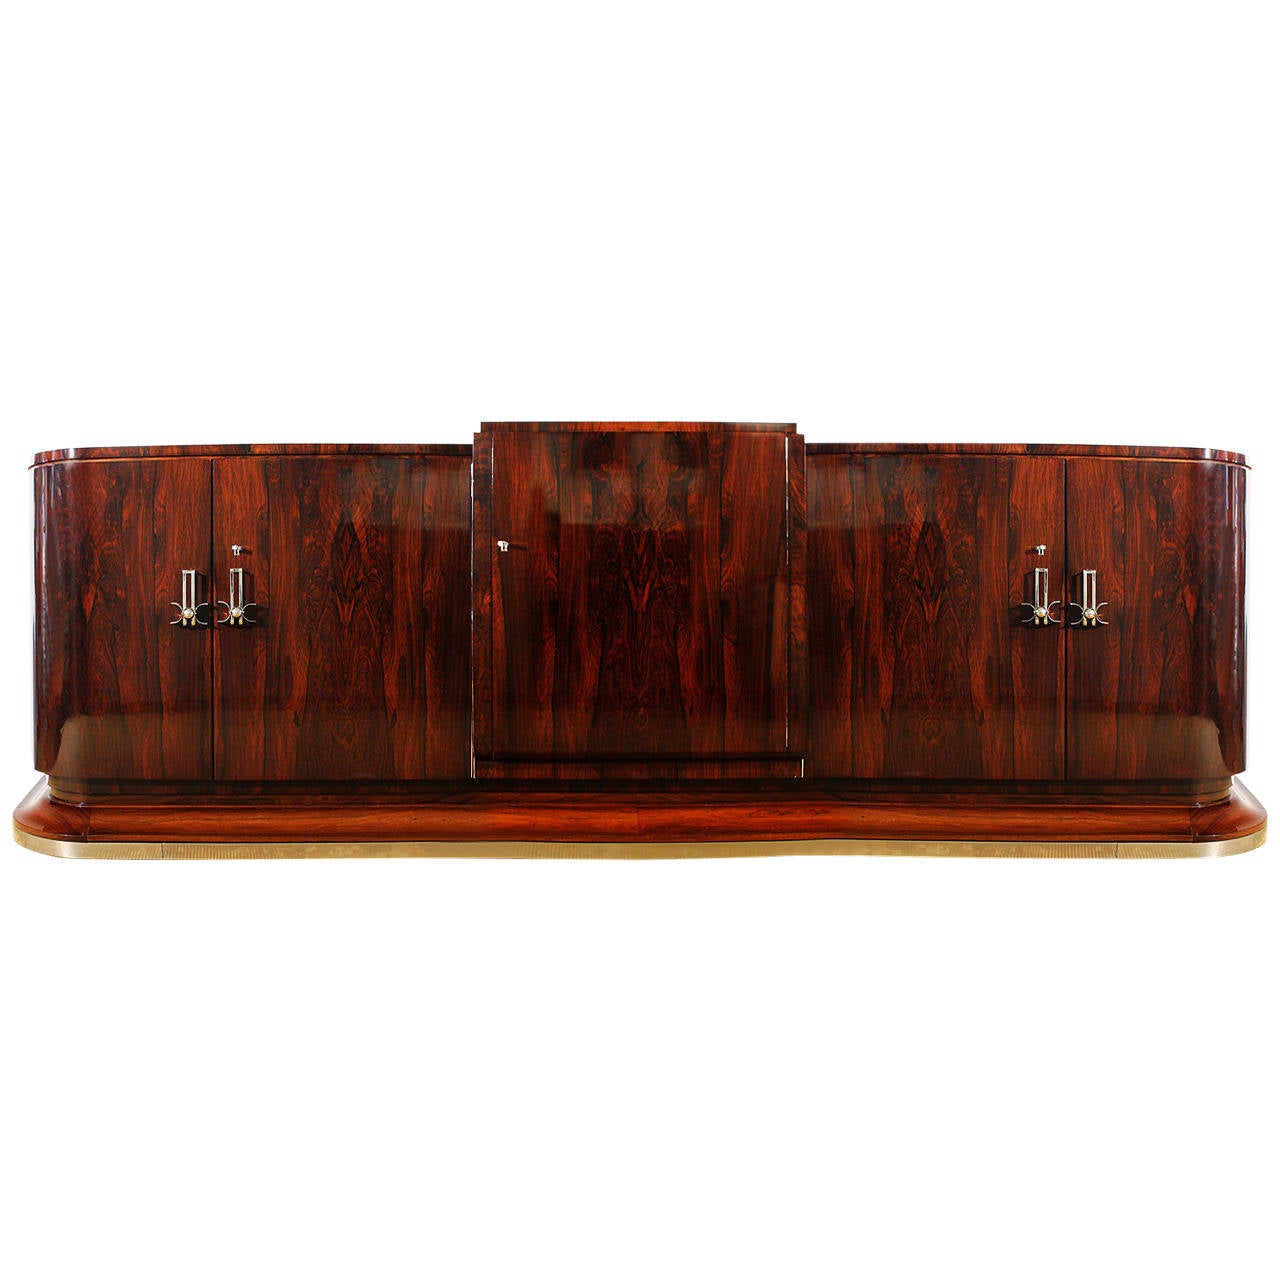 1930s Art Deco sideboard in the style of Jules Leleu, Rio rosewood - France